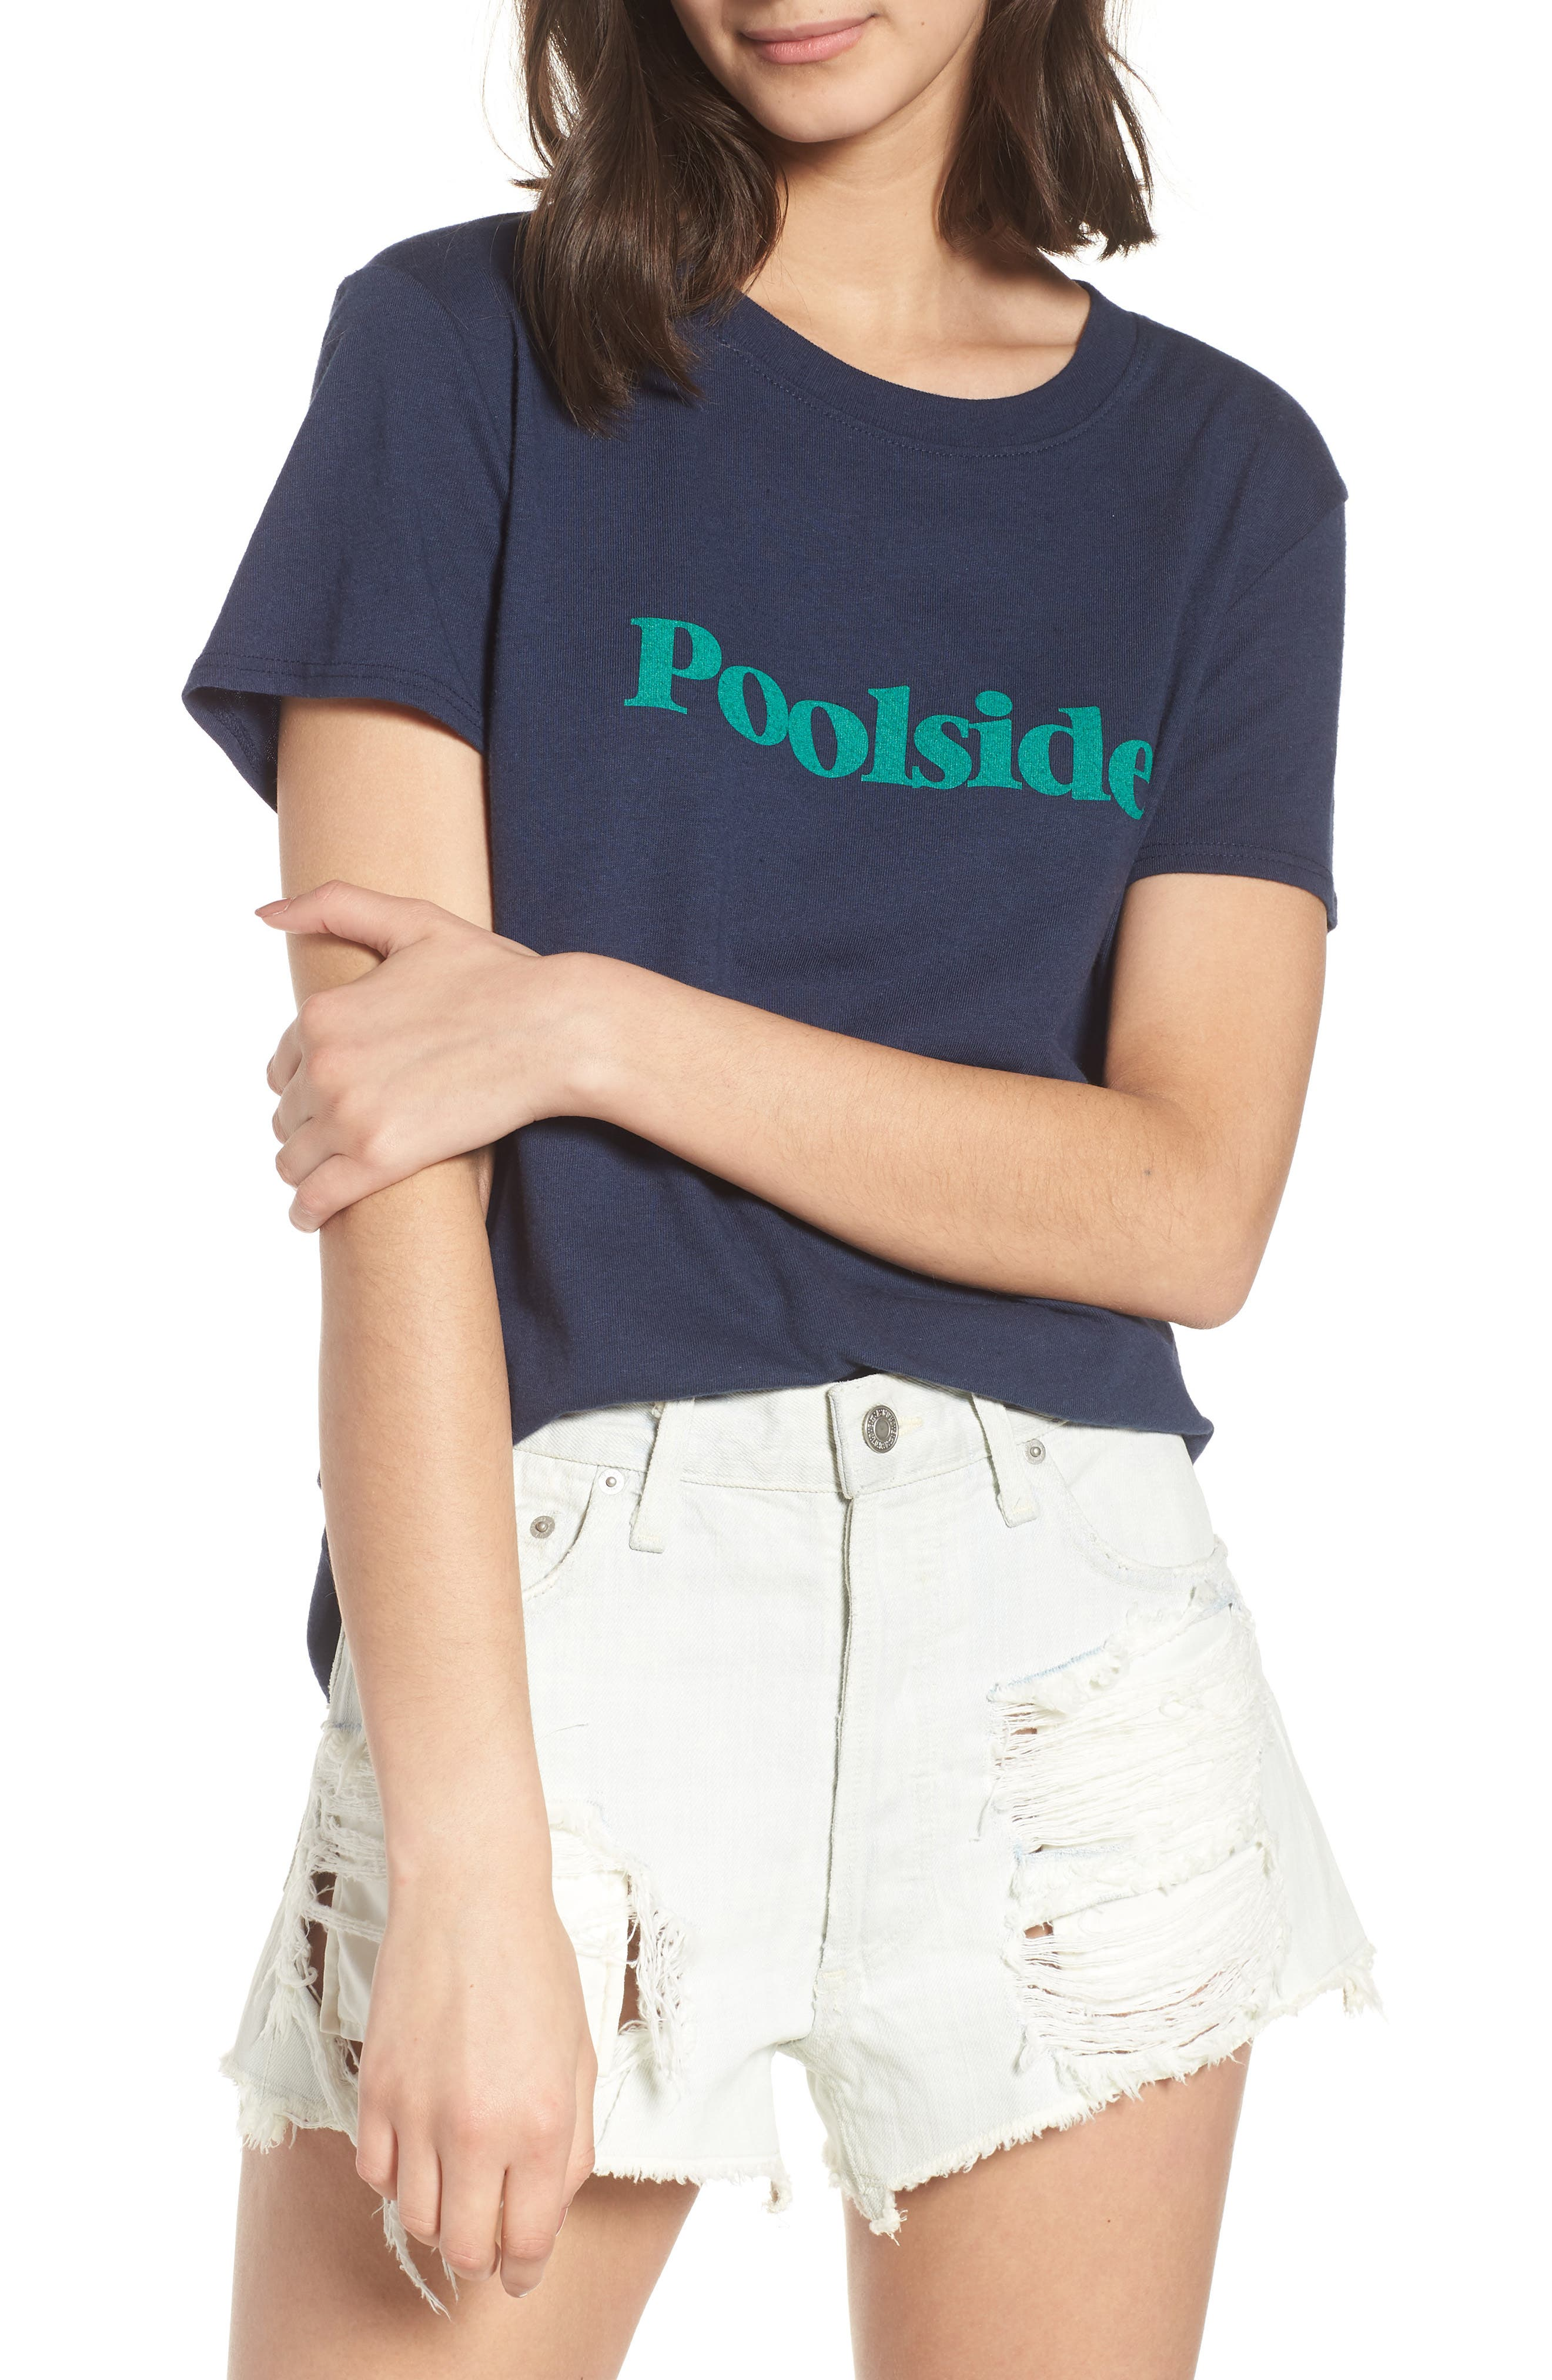 Poolside Graphic Tee,                         Main,                         color, 410